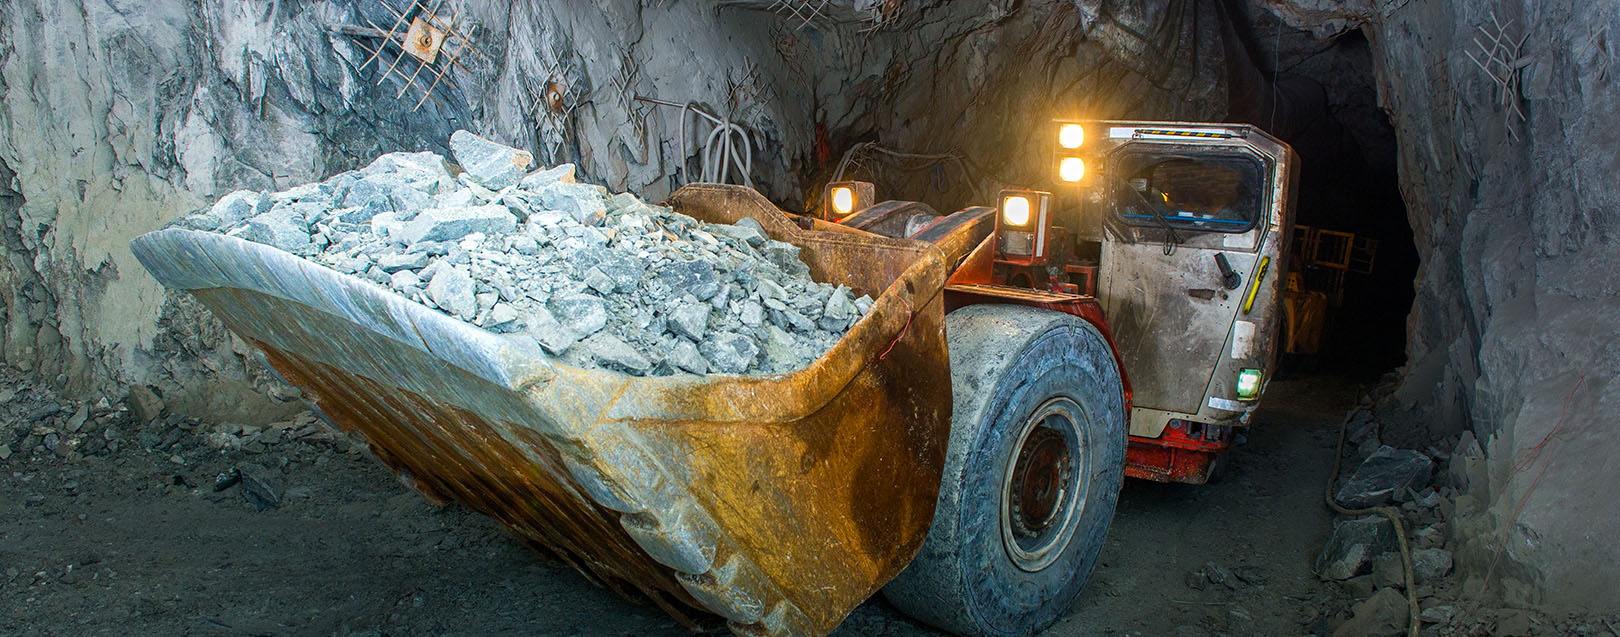 India to explore mining potential with huge aero-geophysical survey